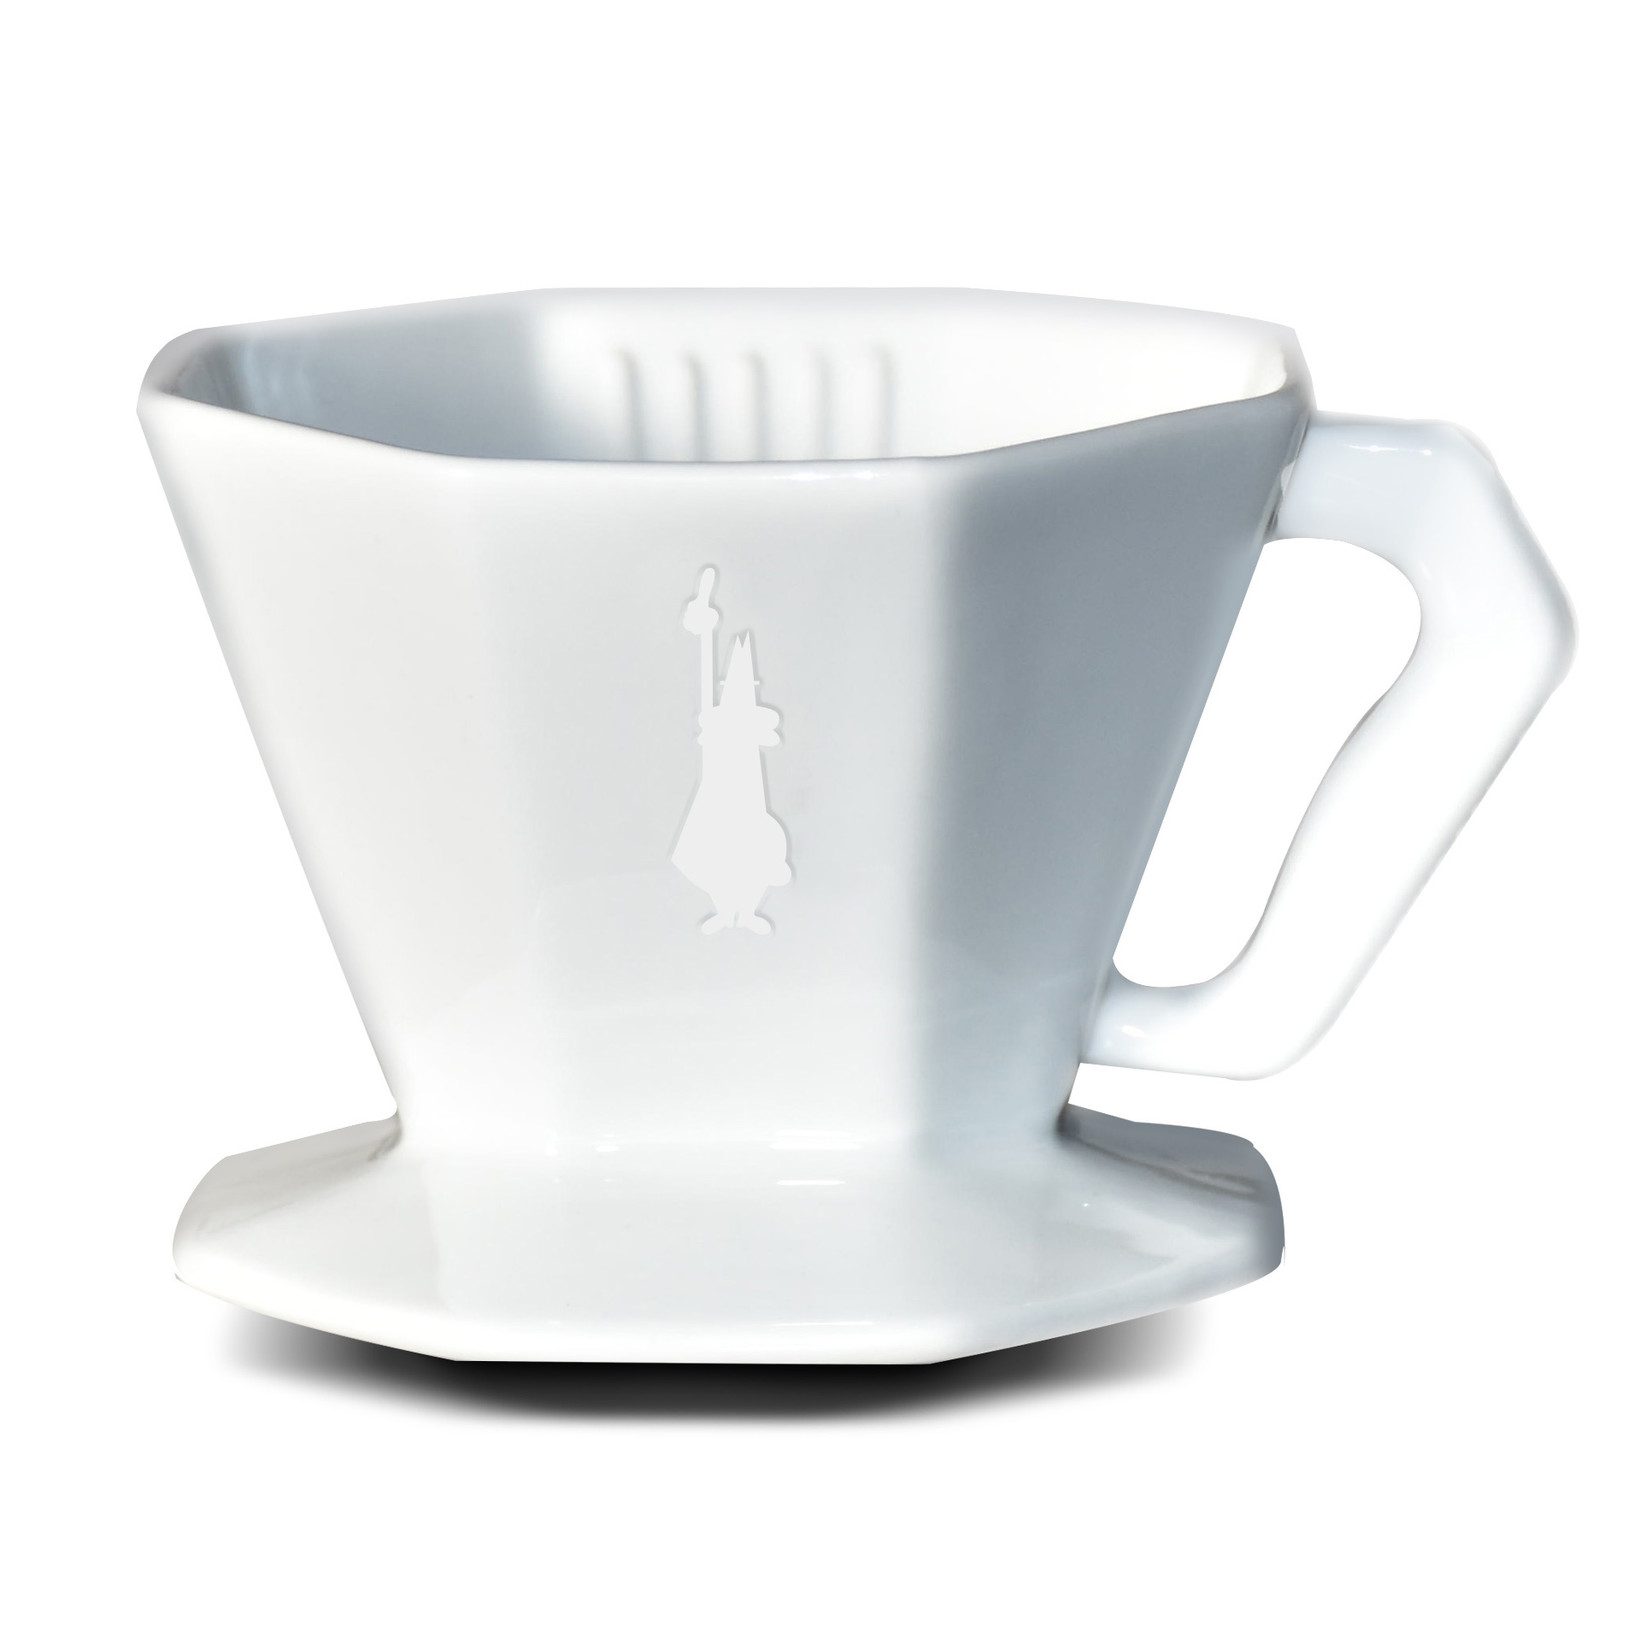 Bialetti Bialetti Pour Over cafetiere keramisch 2 kops